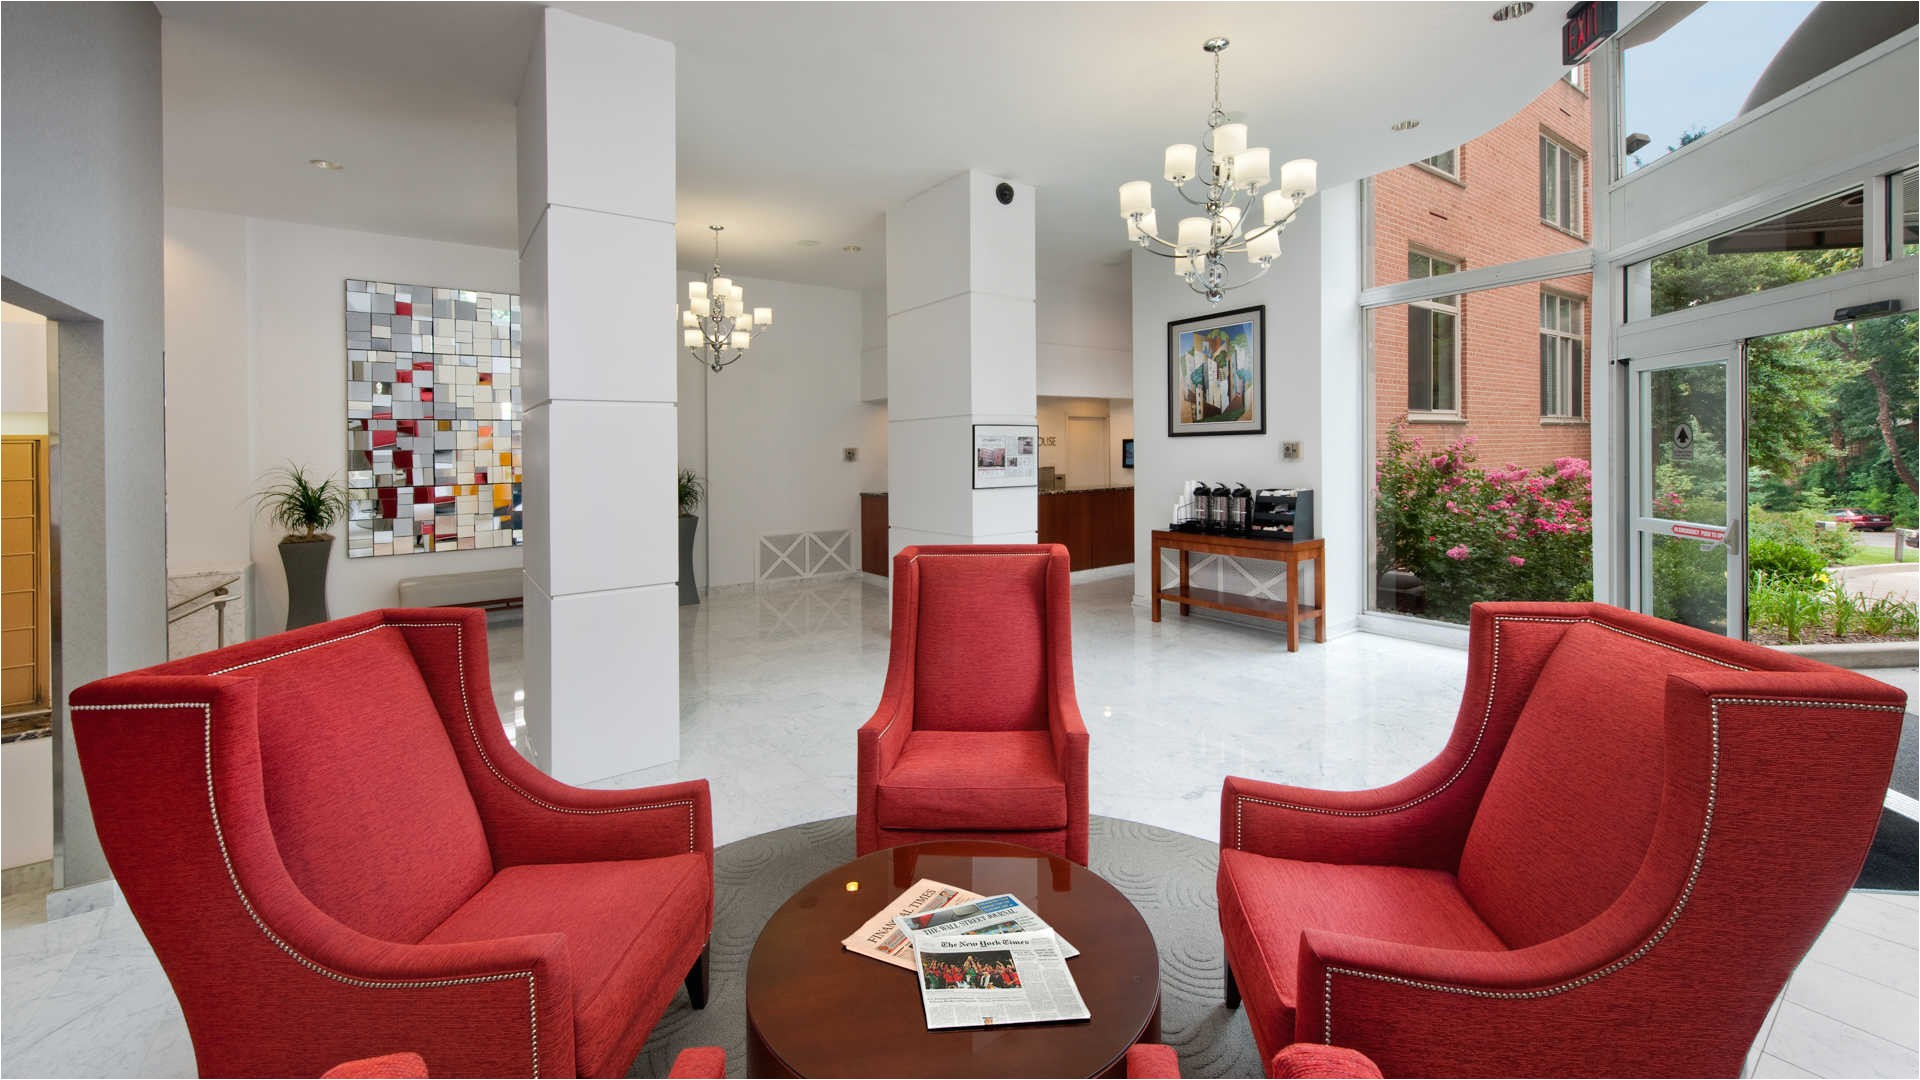 cleveland house apartments in dc woodley park 2727 29th street northwest equityapartments com